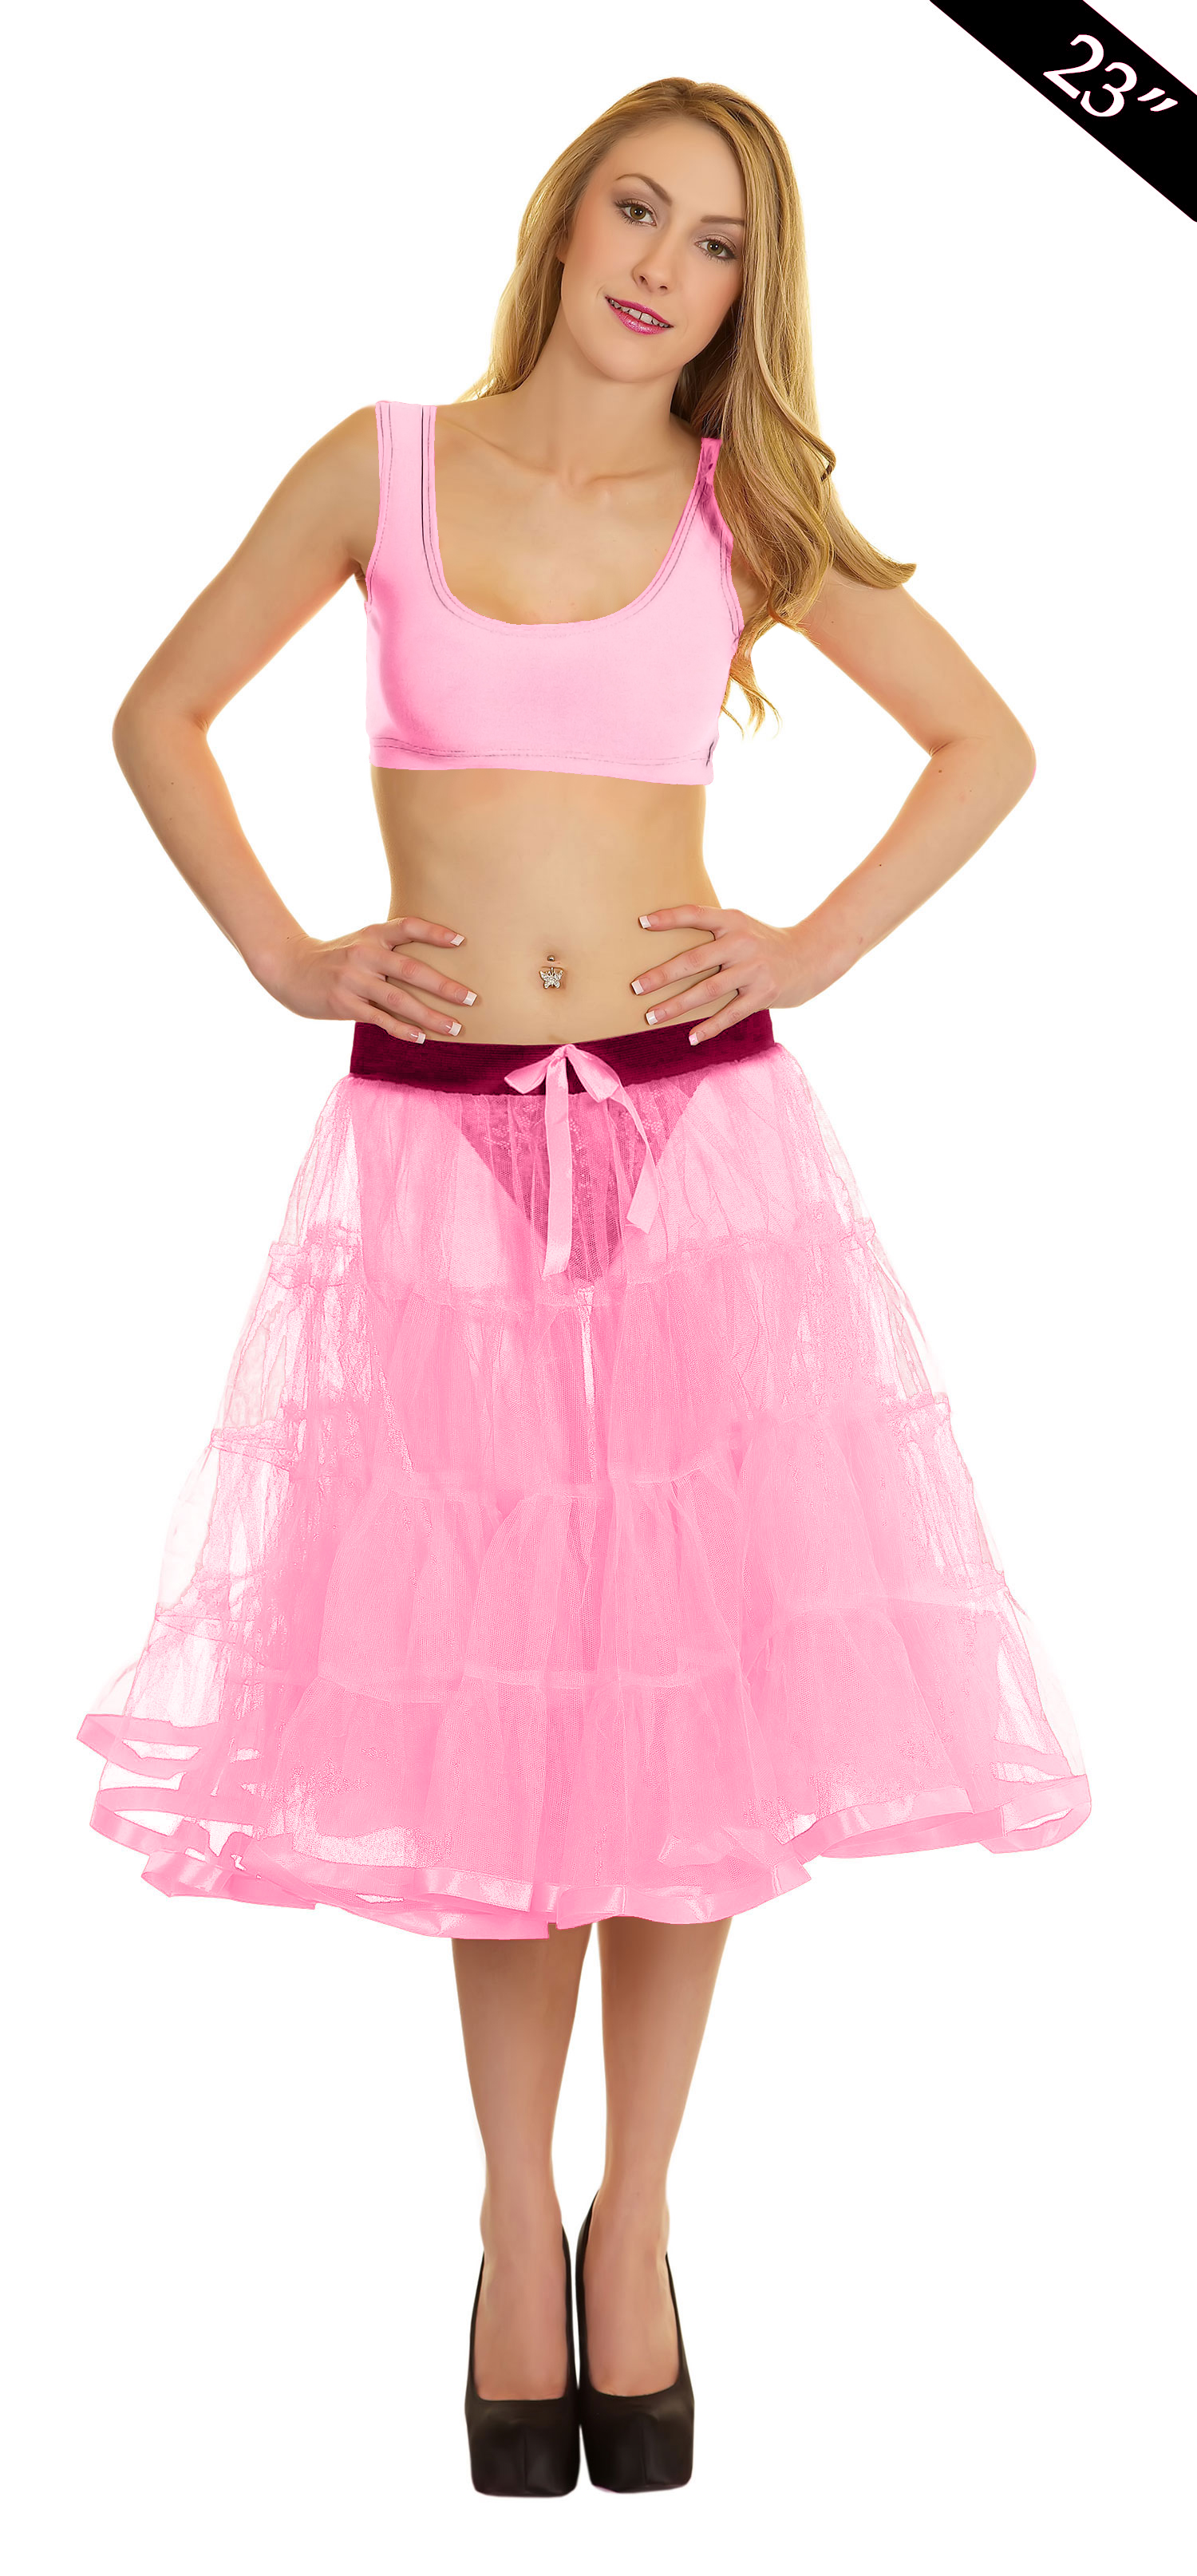 Crazy Chick 4 Tier Petticoat with Ribbon baby Pink TuTu Skirt (Approximately 23 Inches Long)